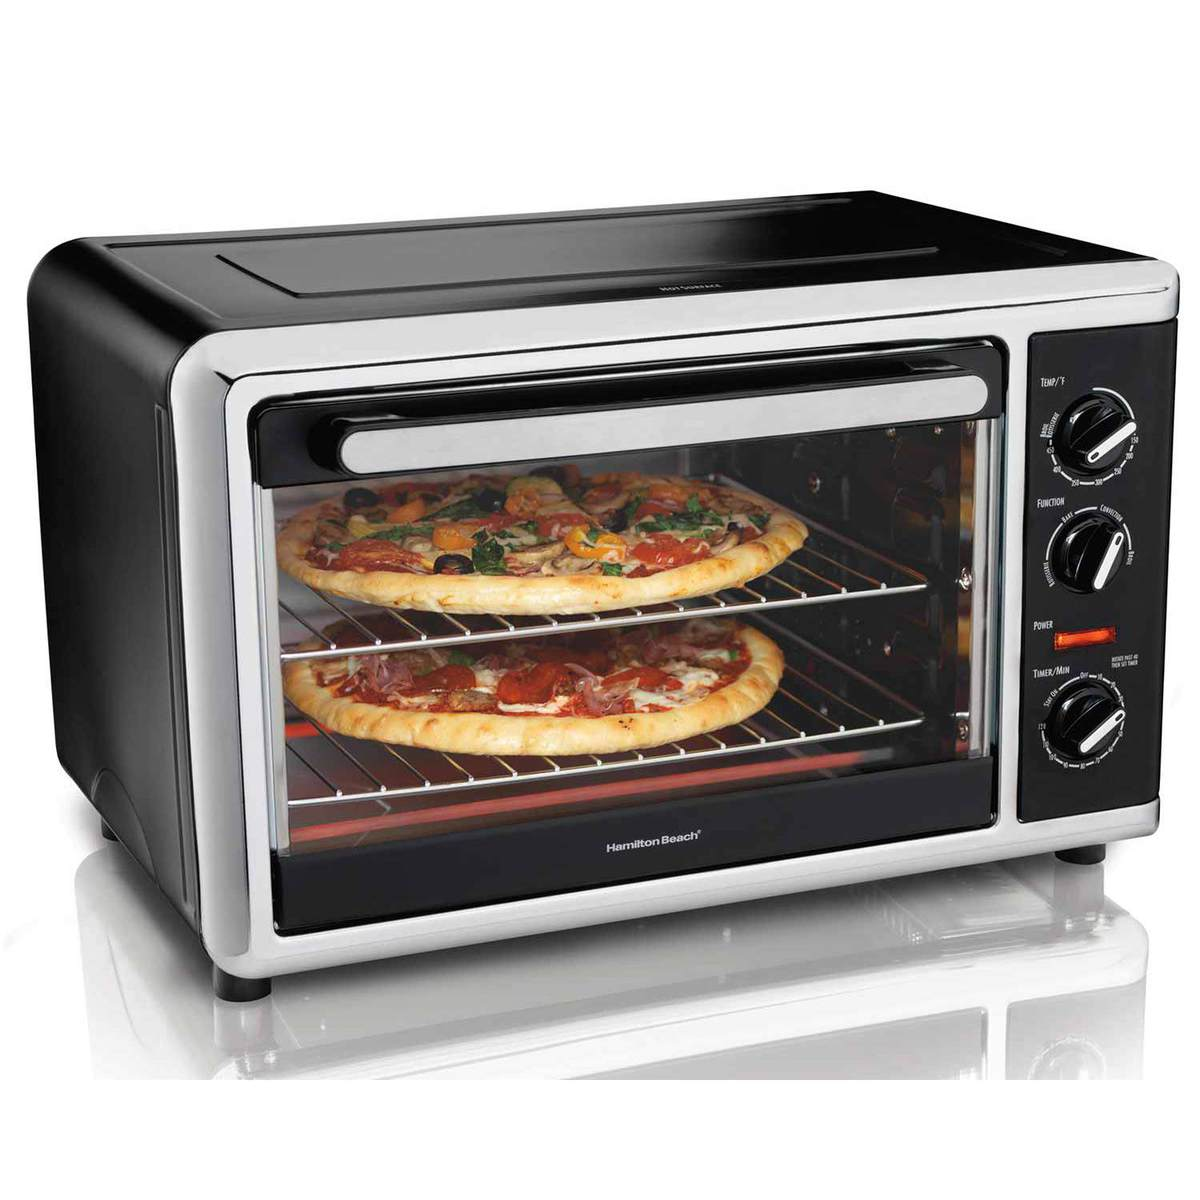 Best Countertop Ovens For Baking Convection Ovens Hamiltonbeach